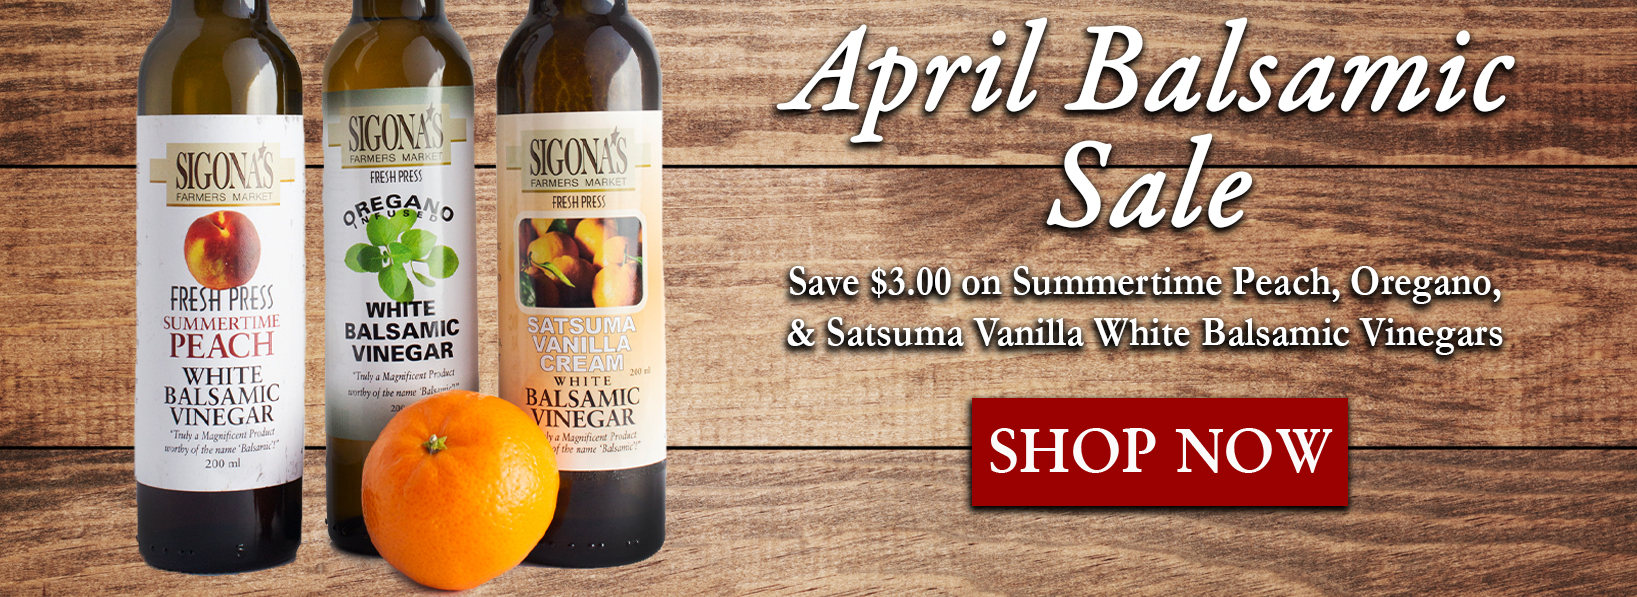 April Balsamic Sale